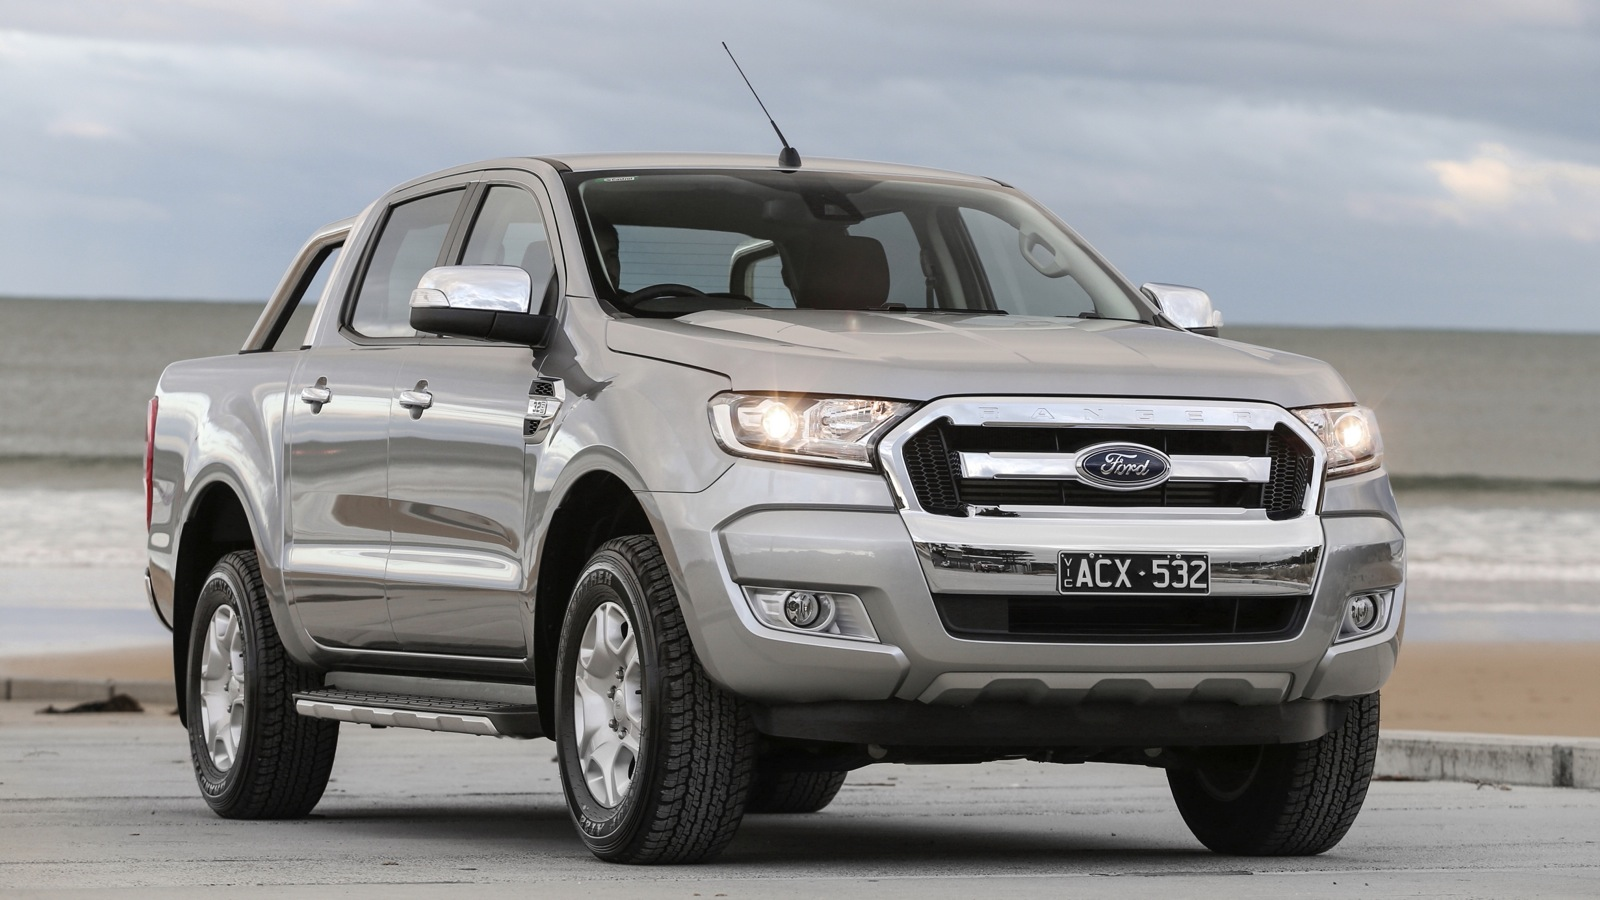 2016 ford ranger - photo #1